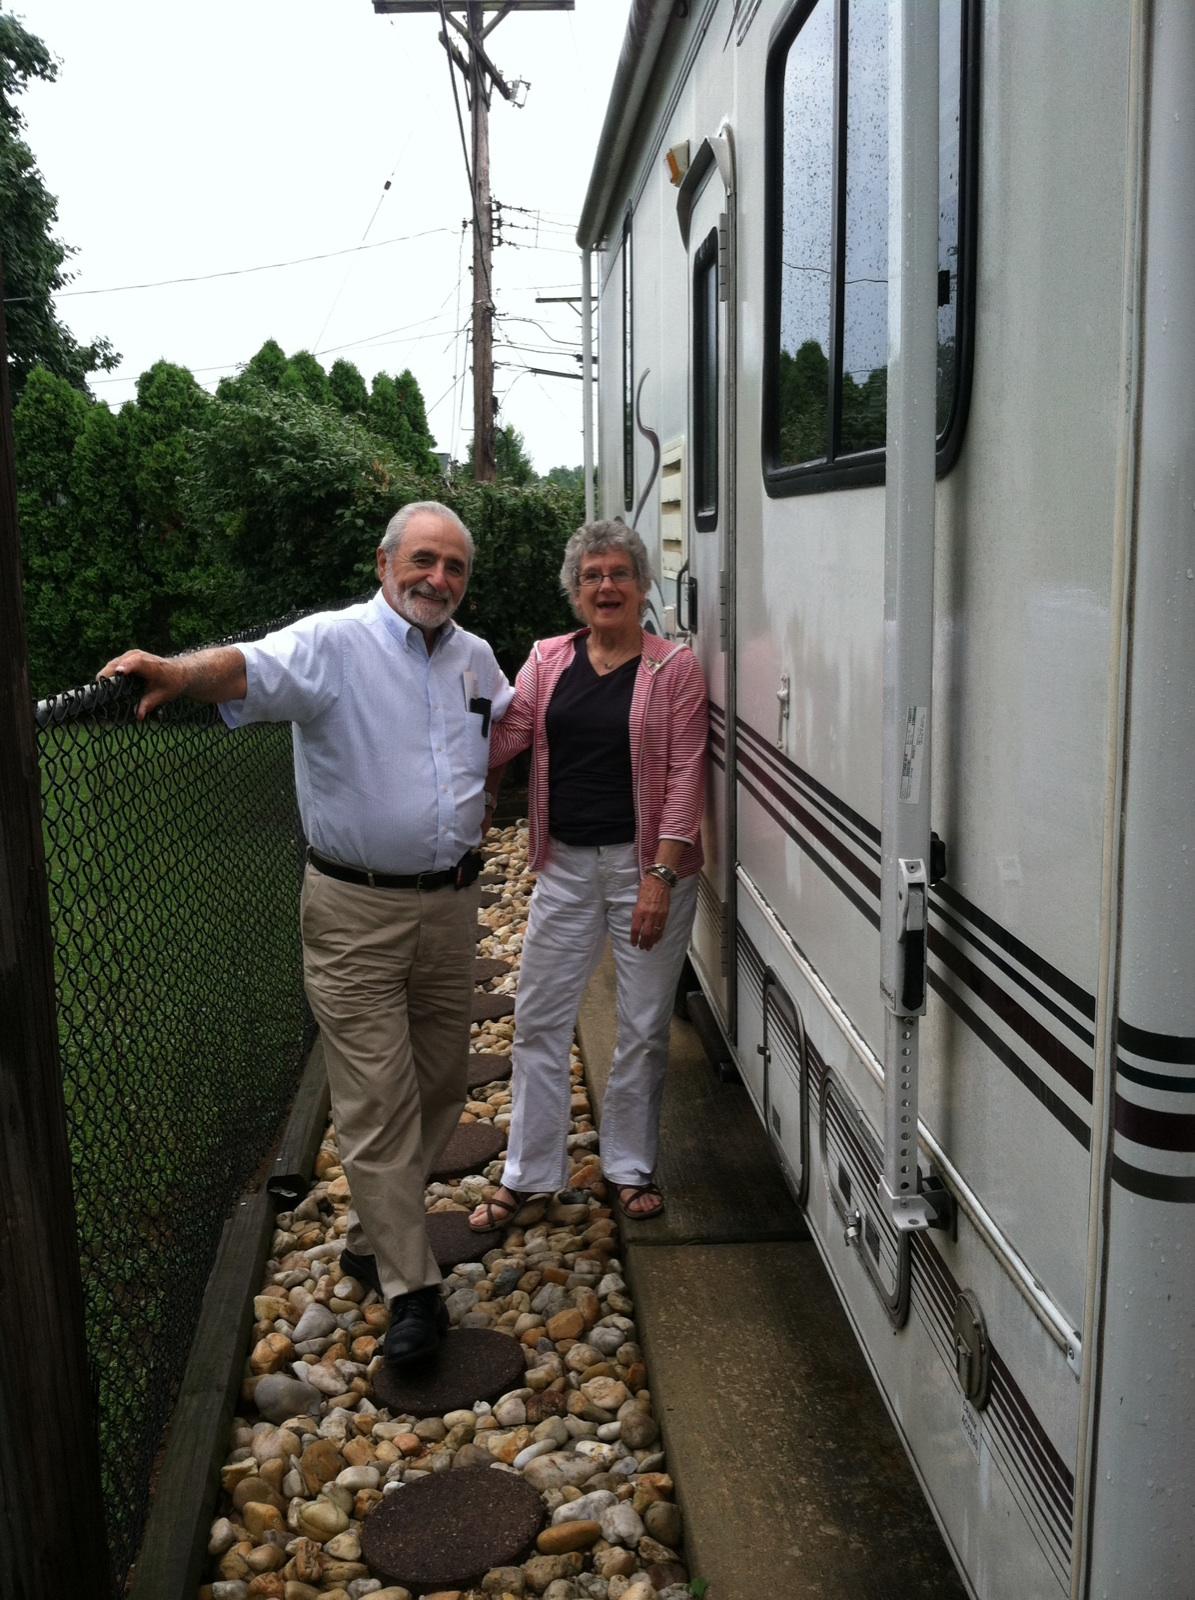 Fran and Bob Ciaccia in front of RV